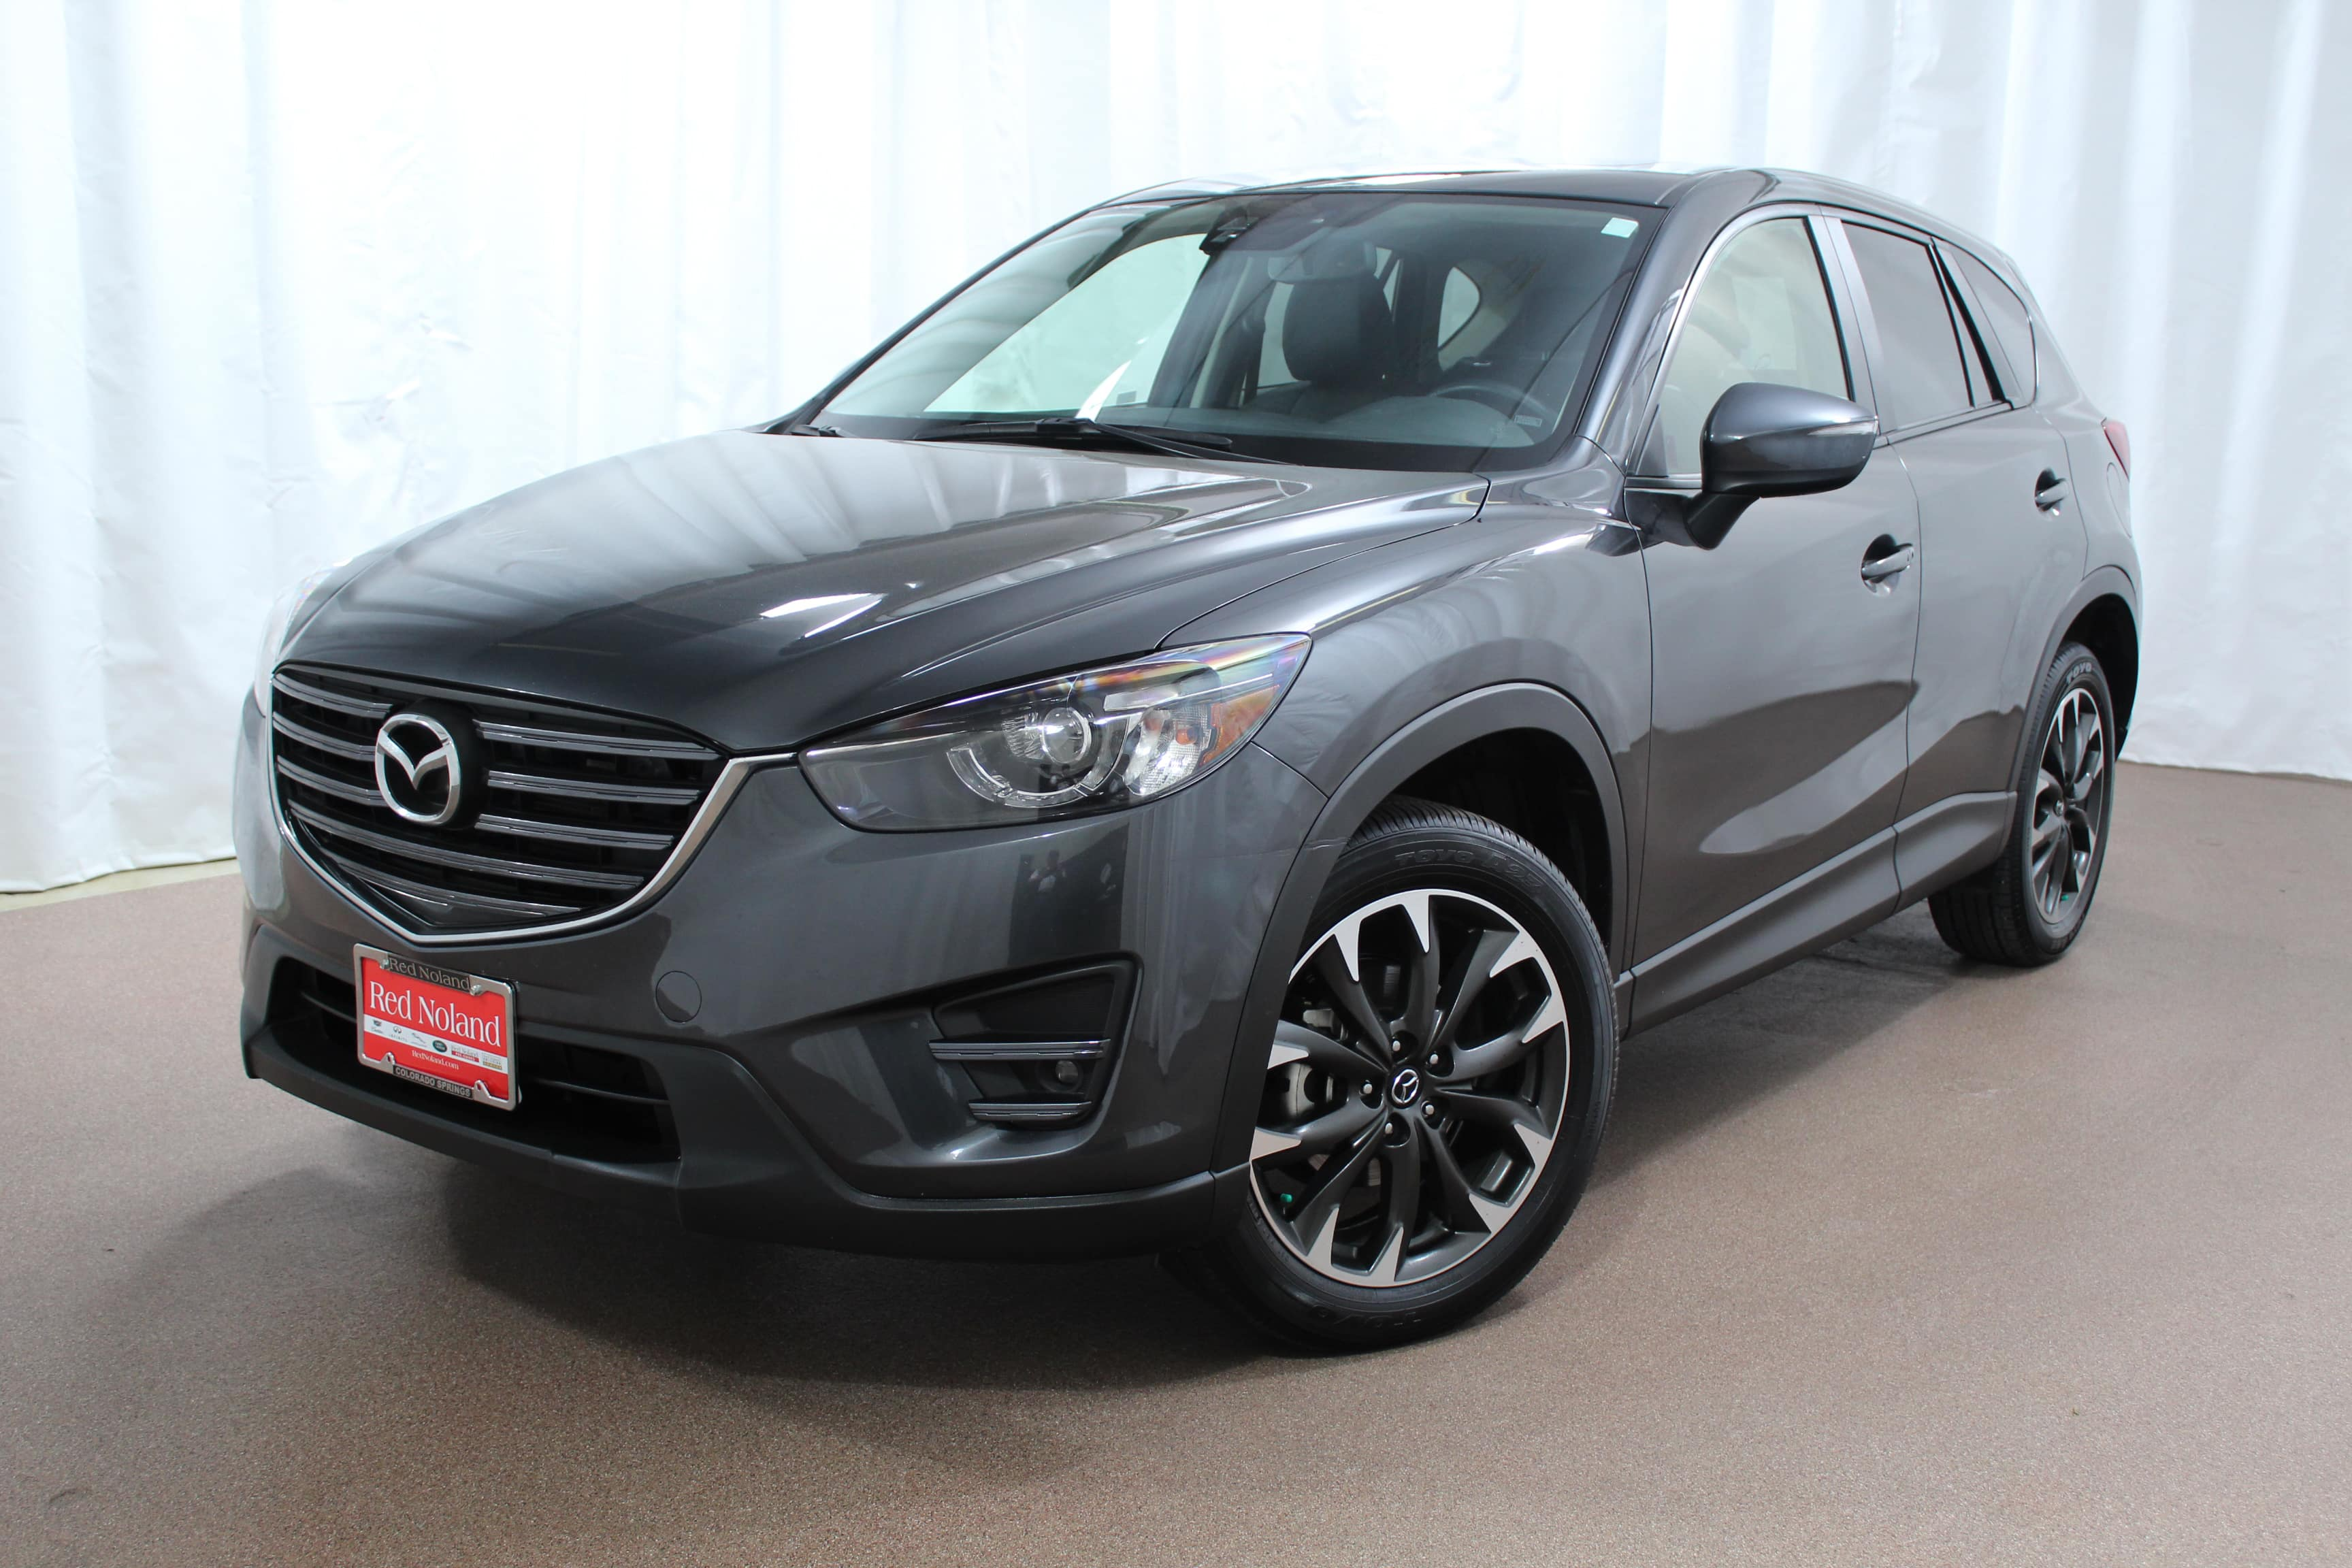 used 2016 mazda cx 5 grand touring at land rover colorado springs. Black Bedroom Furniture Sets. Home Design Ideas